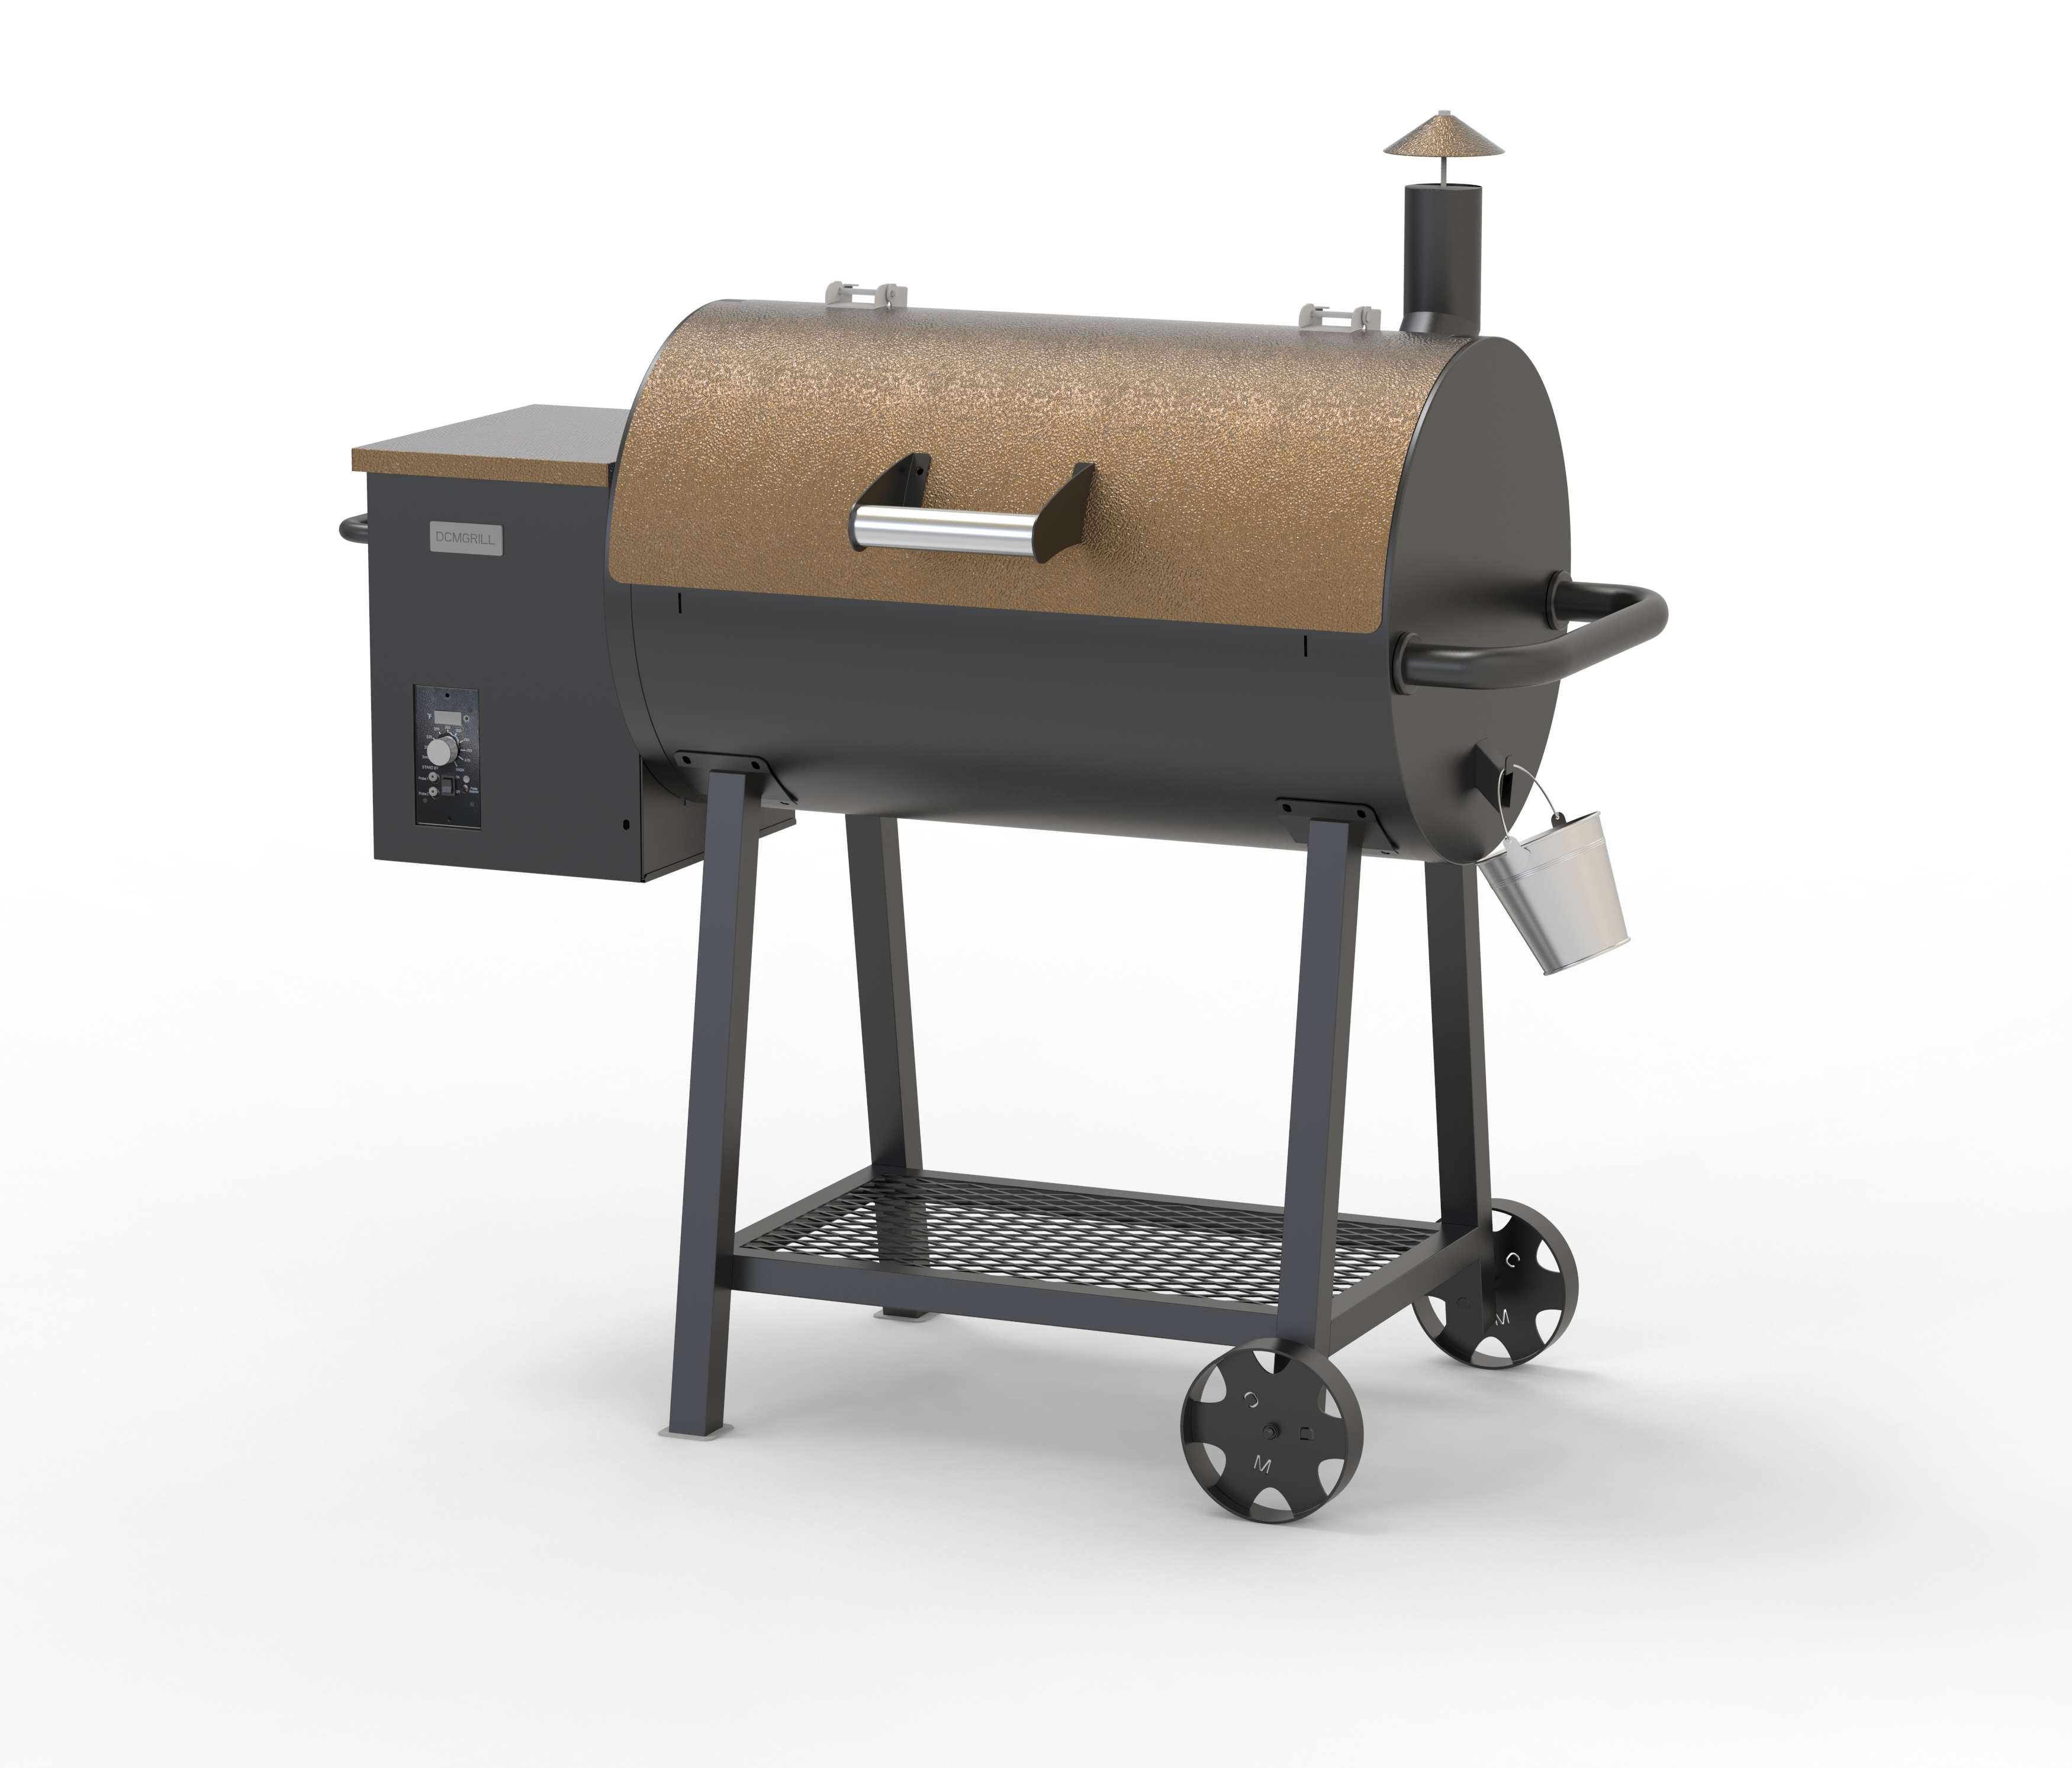 custom outdoor barbecue electric portable small bbq wood fired <strong>fish</strong> pellet make <strong>grill</strong> kit <strong>machine</strong> and smoker with pid controller